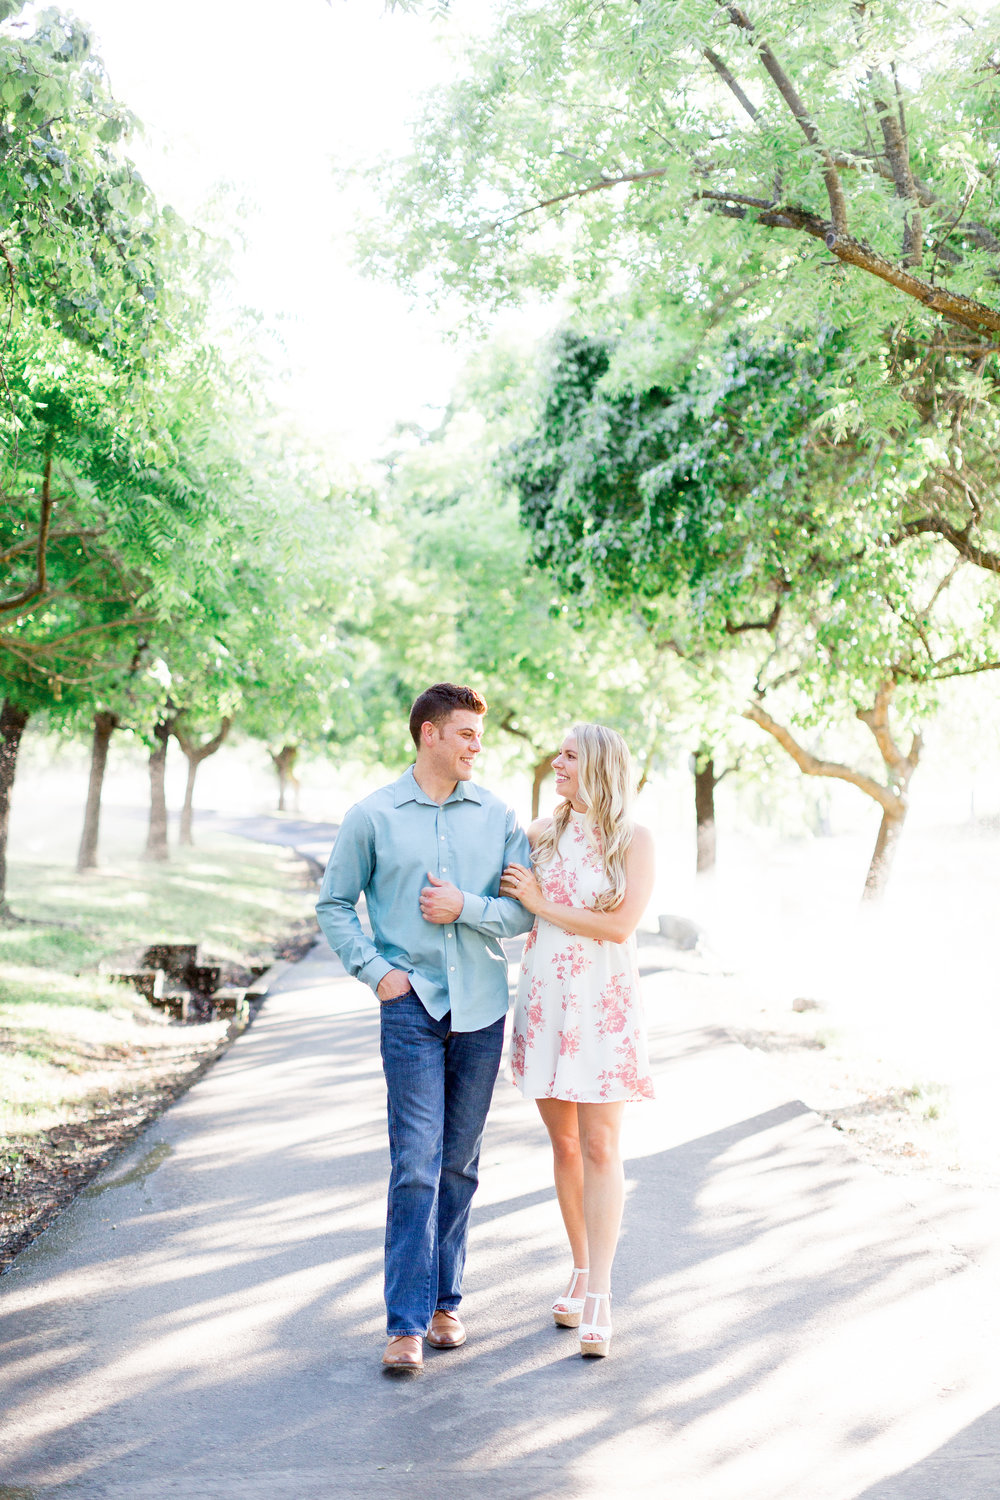 bywater-hollow-lavendar-farm-engagement-photography (8 of 155).jpg